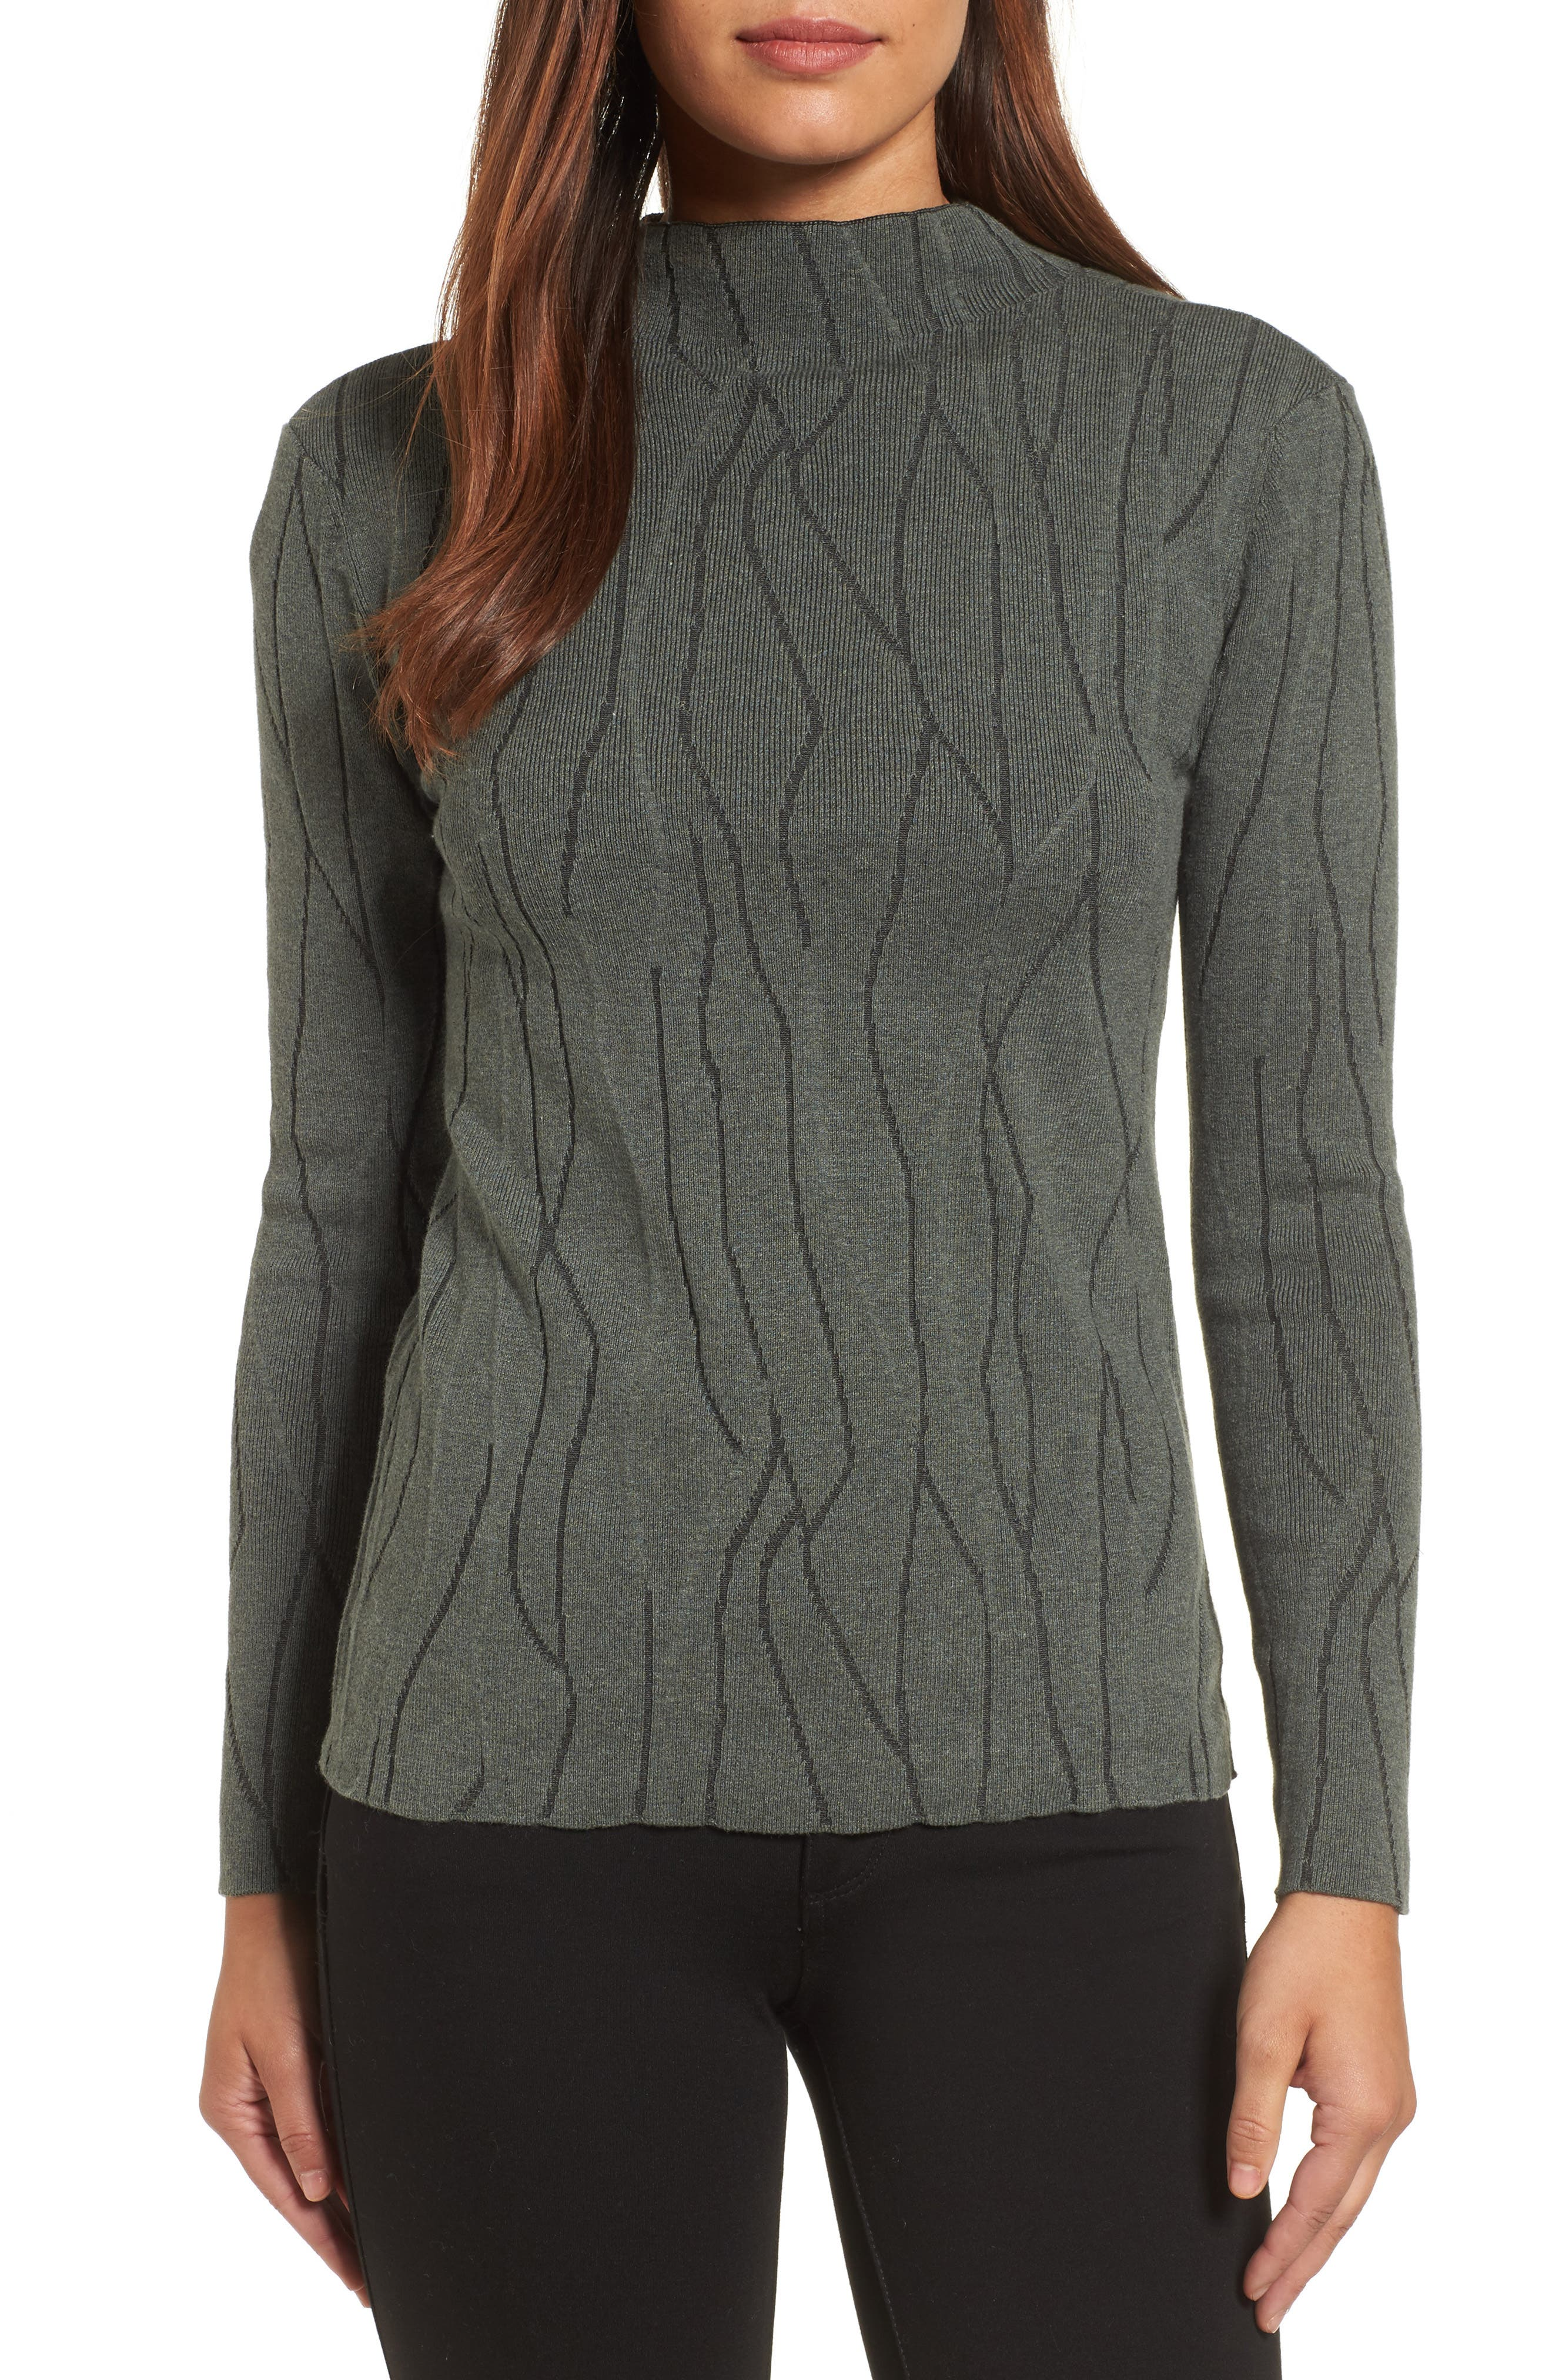 NIC+ZOE Artisanal Crackle Jacquard Sweater (Regular & Petite)